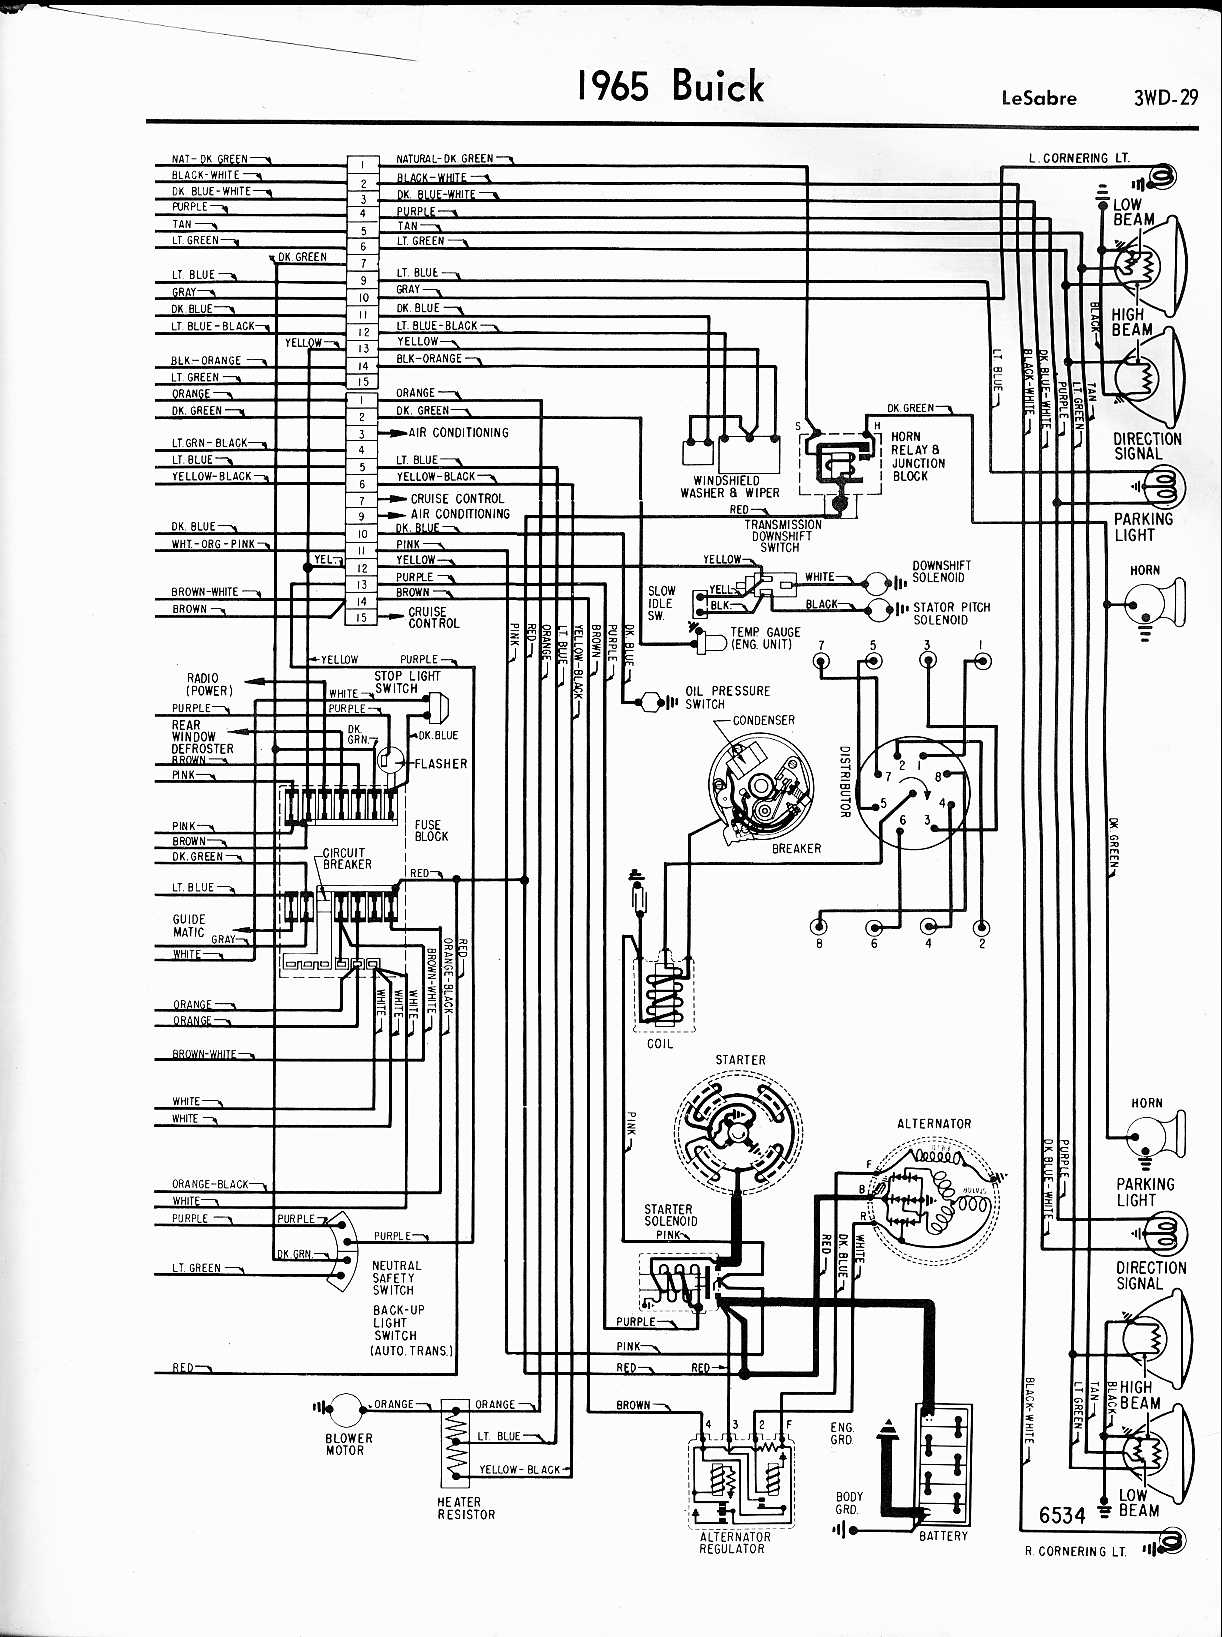 1966 buick wildcat wiring diagram jeep wrangler jk trailer diagrams 1957 1965